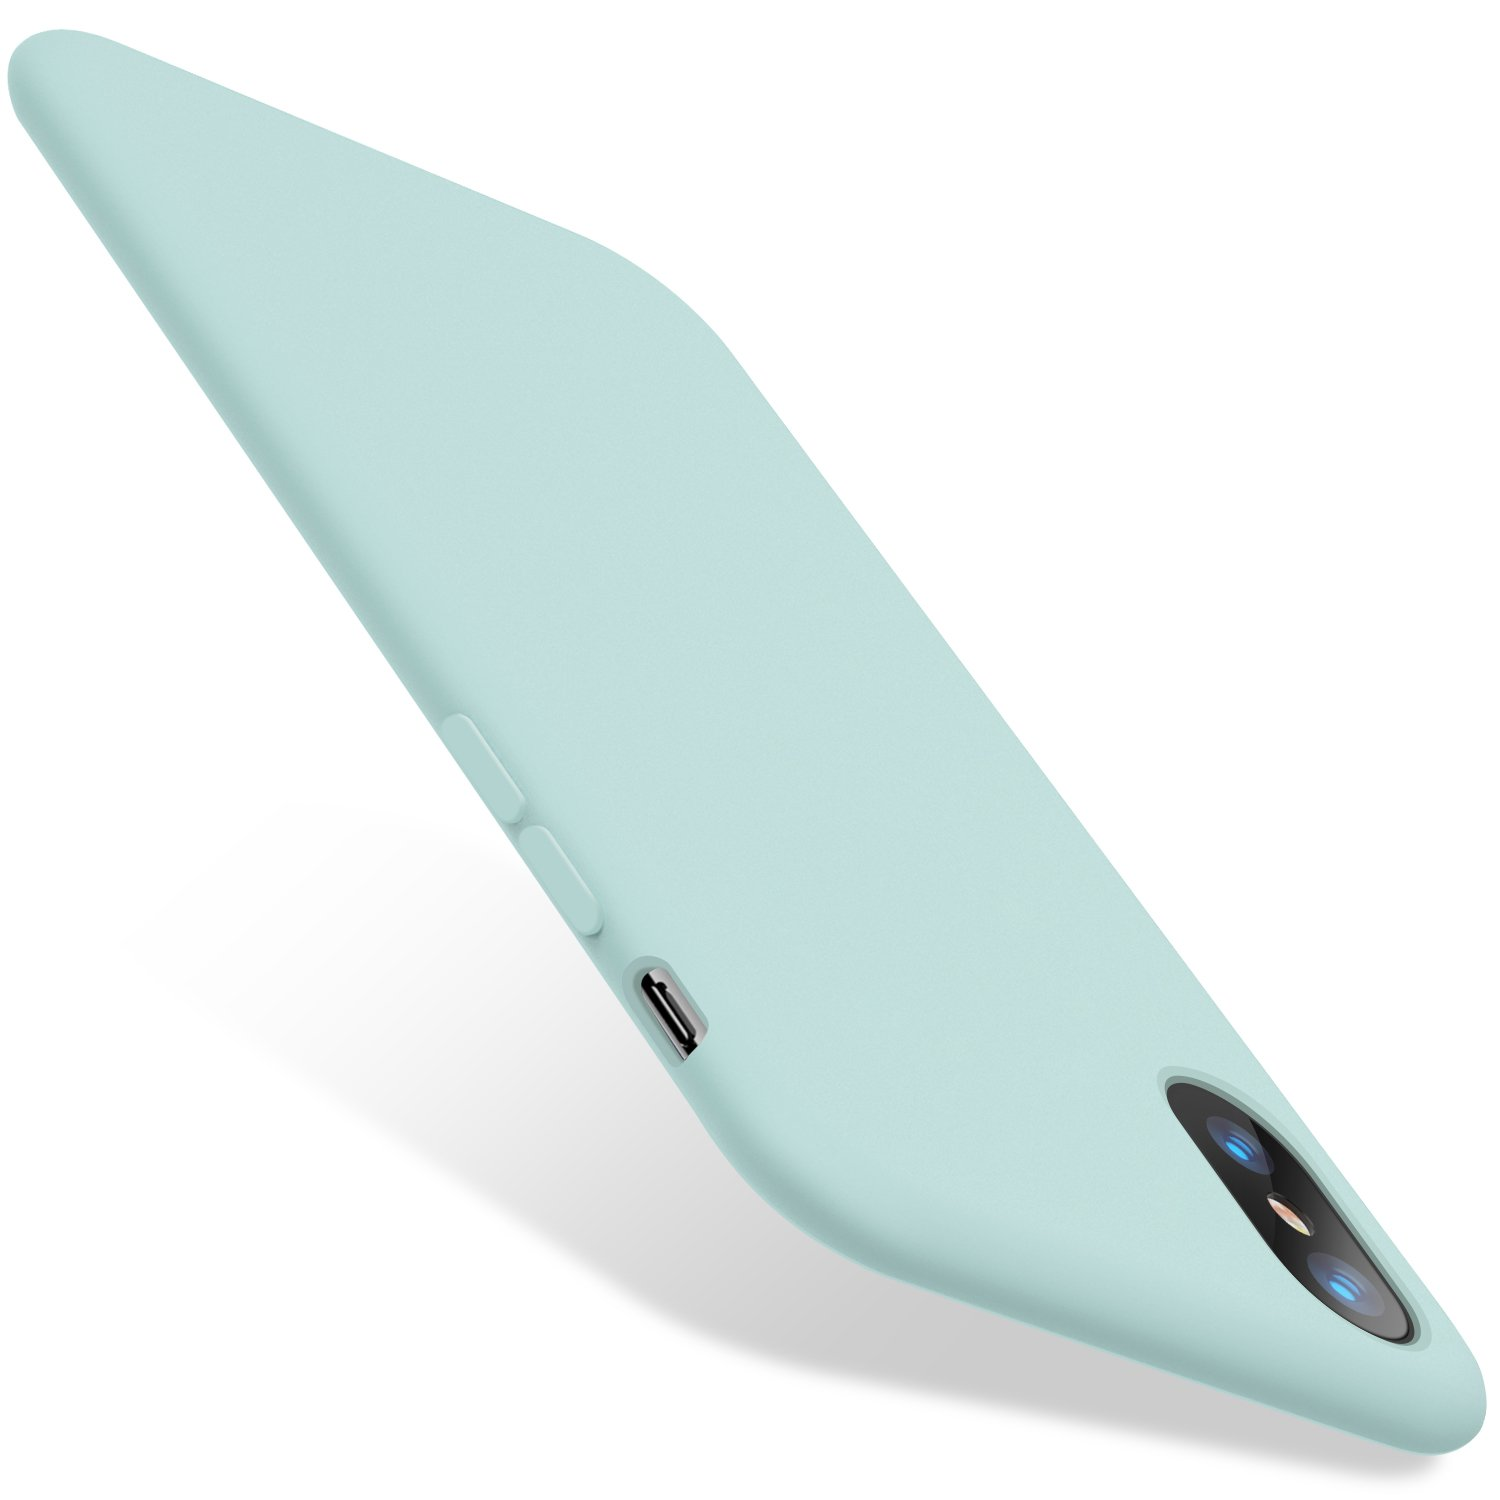 TORRAS [Love Series] iPhone X Case, Liquid Silicone Gel Rubber Shockproof Case Soft Microfiber Cloth Lining Cushion Compatible iPhone X (2017), Mint